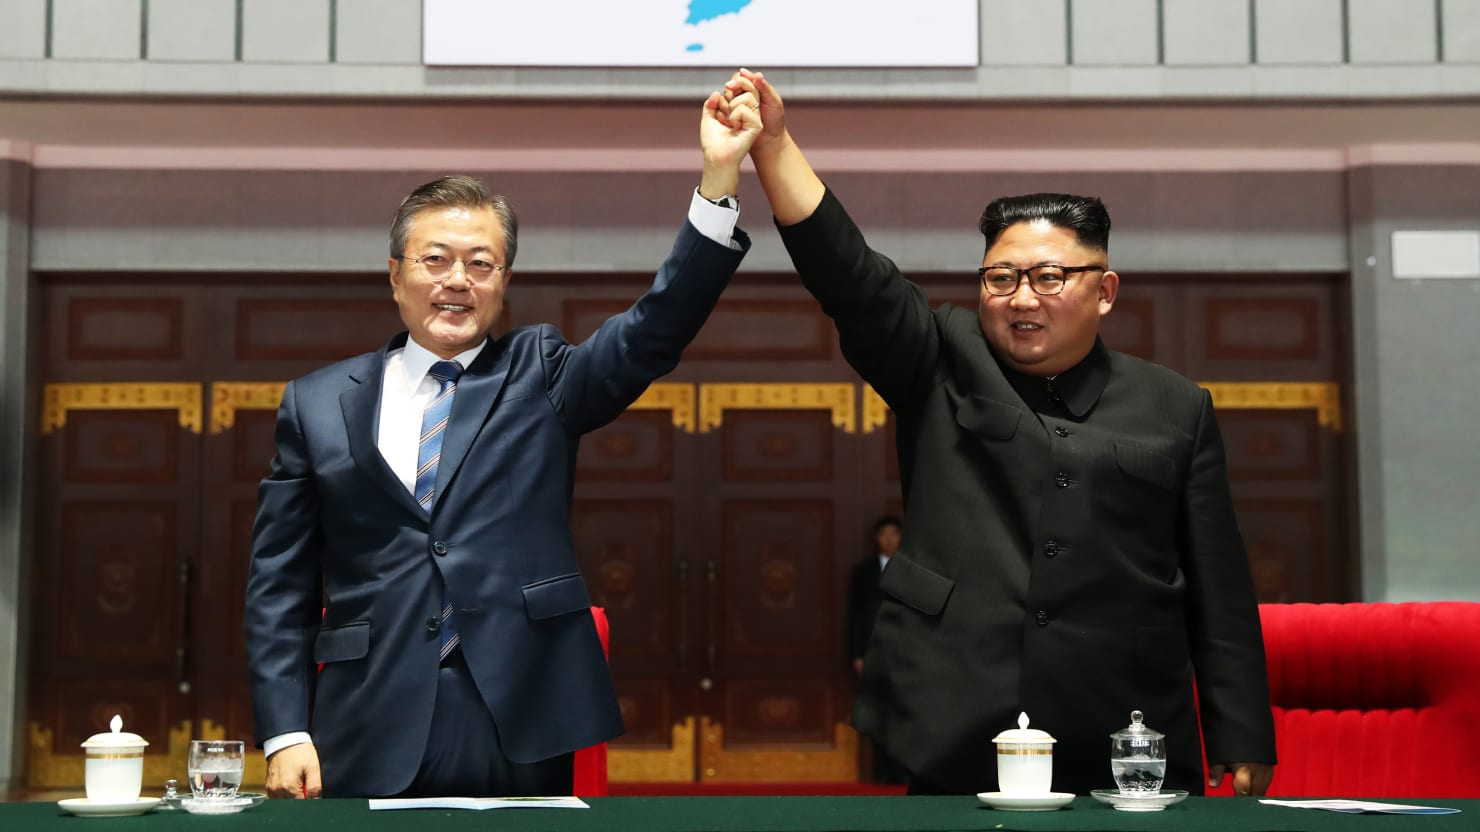 South Korea's Old Torture Factory Is Making Nice With Kim Jong Un